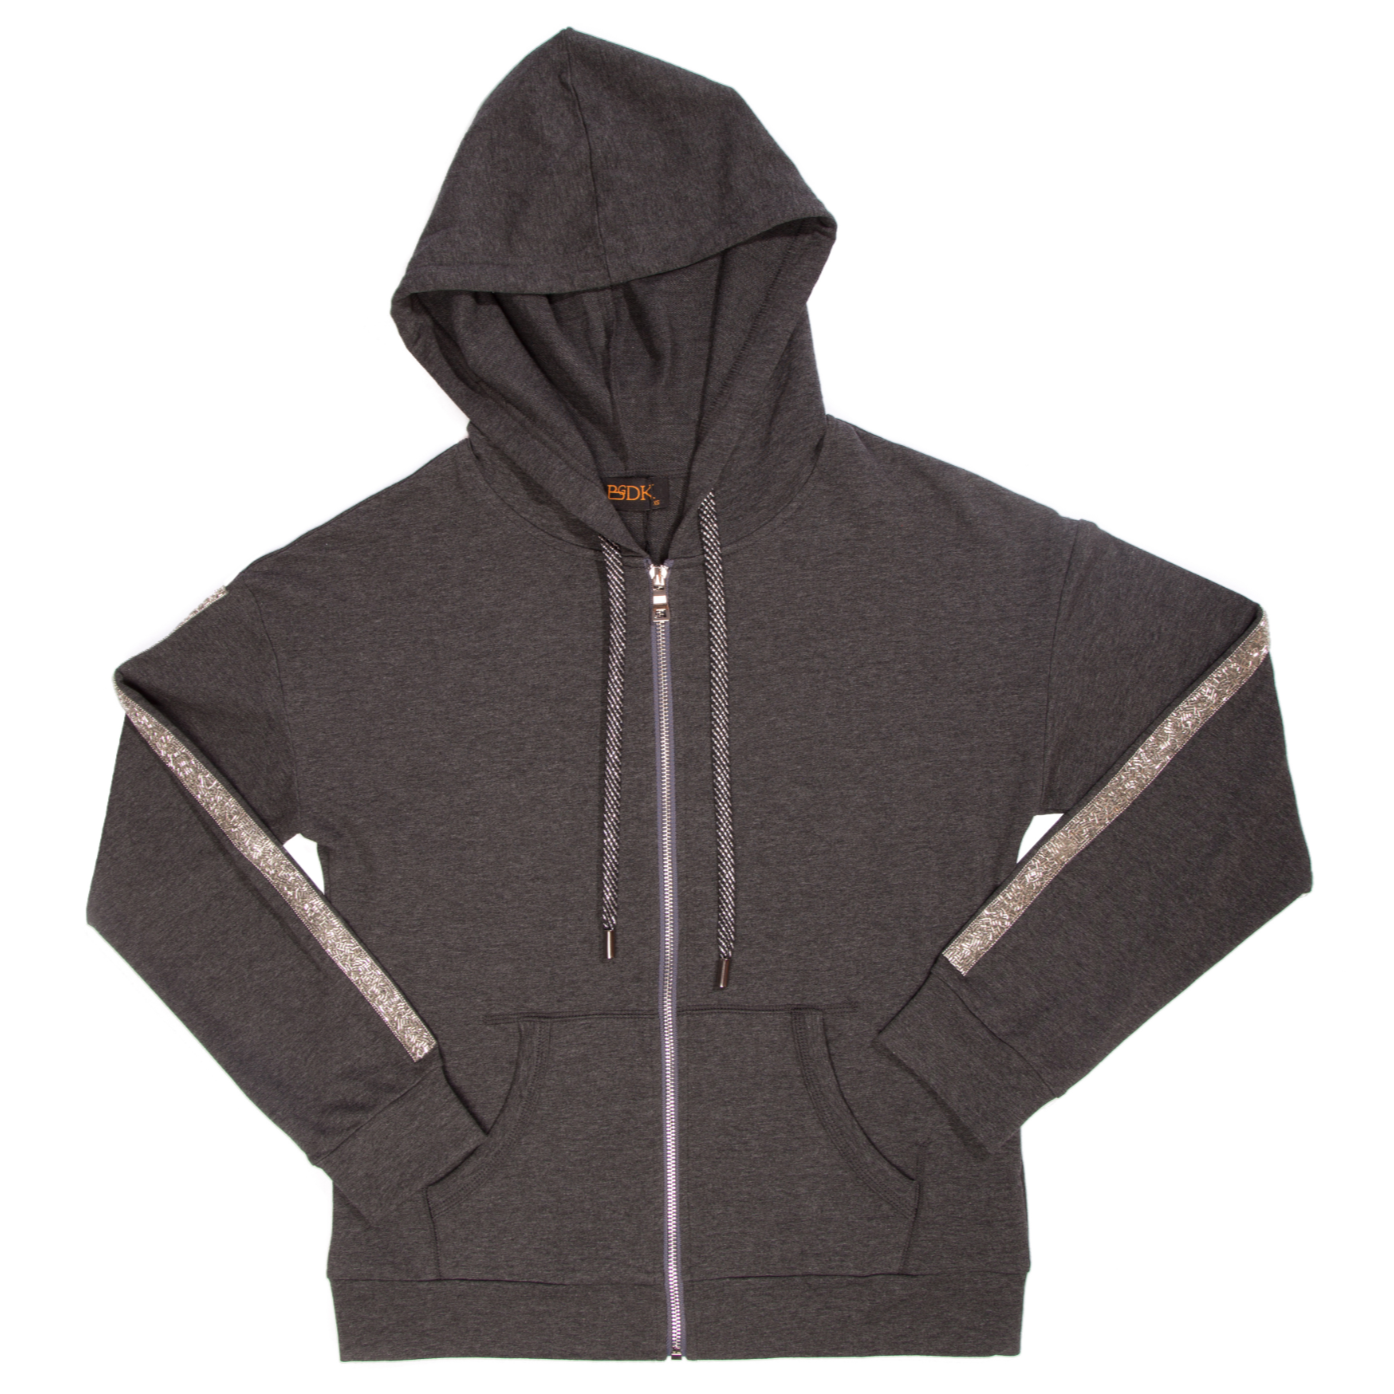 Women's Zip-Up Hoodie with Sequins